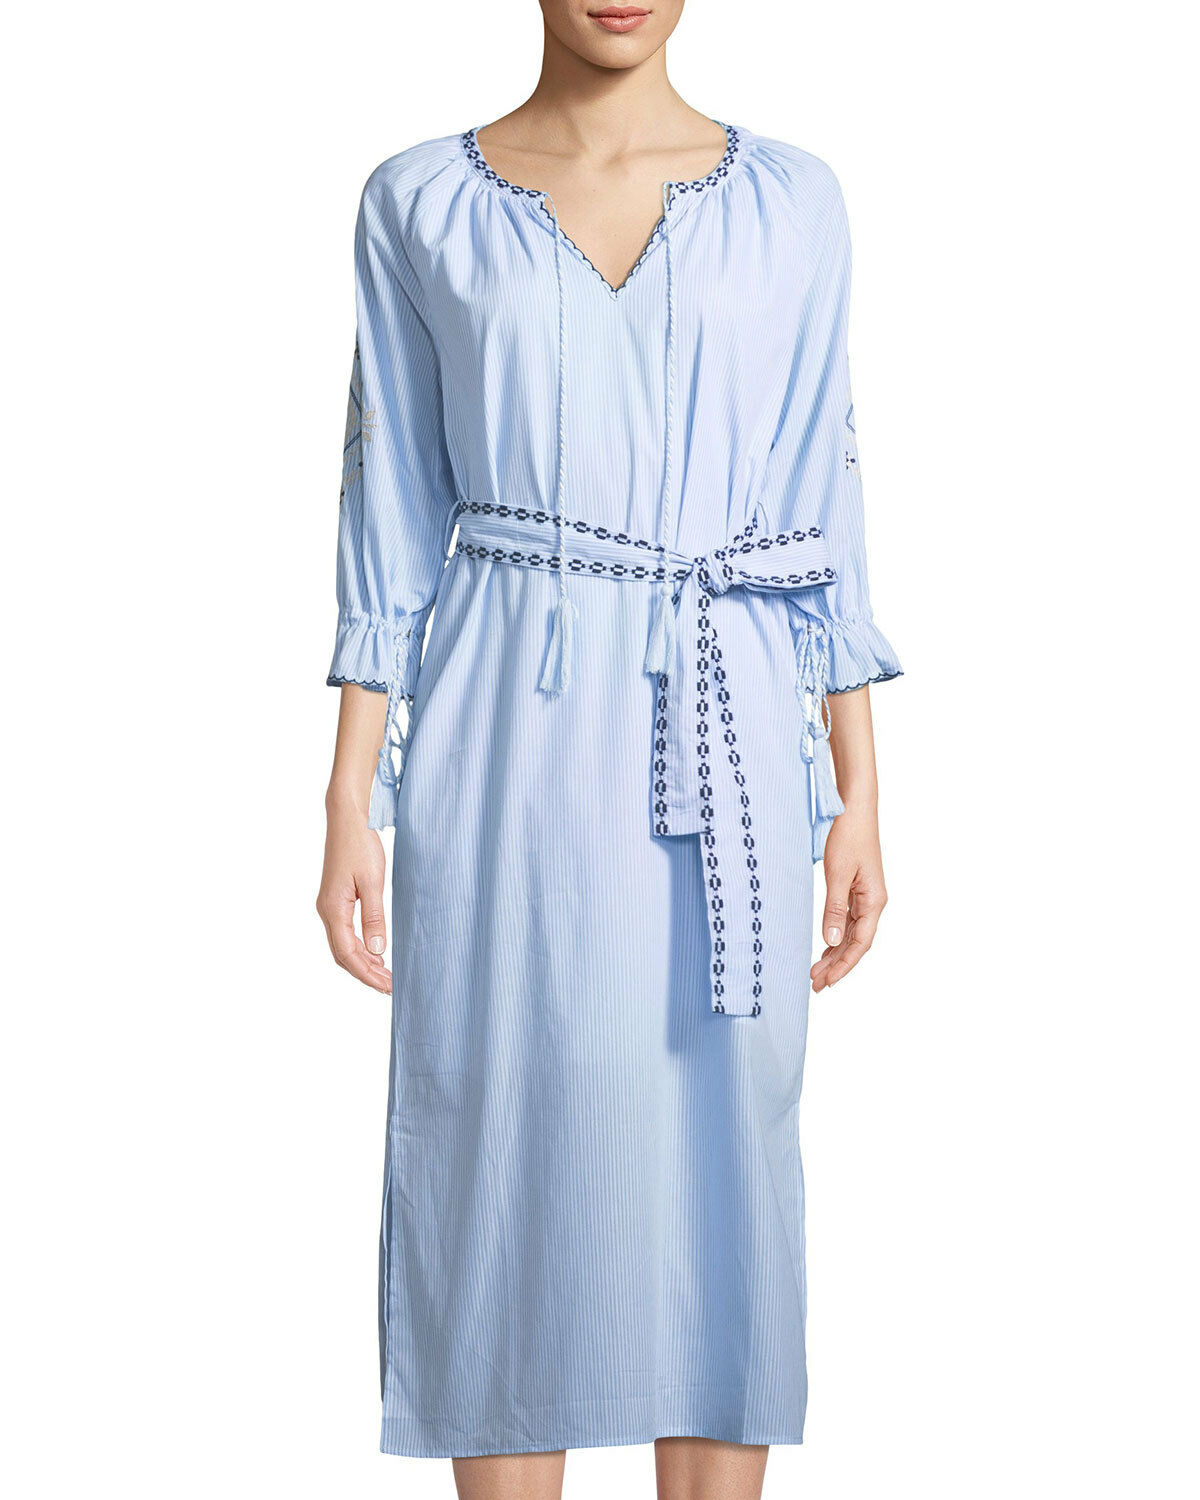 2018 NWT WOMENS MOON RIVER TIE FRONT EMBROIDERED DRESS  light bluee striped